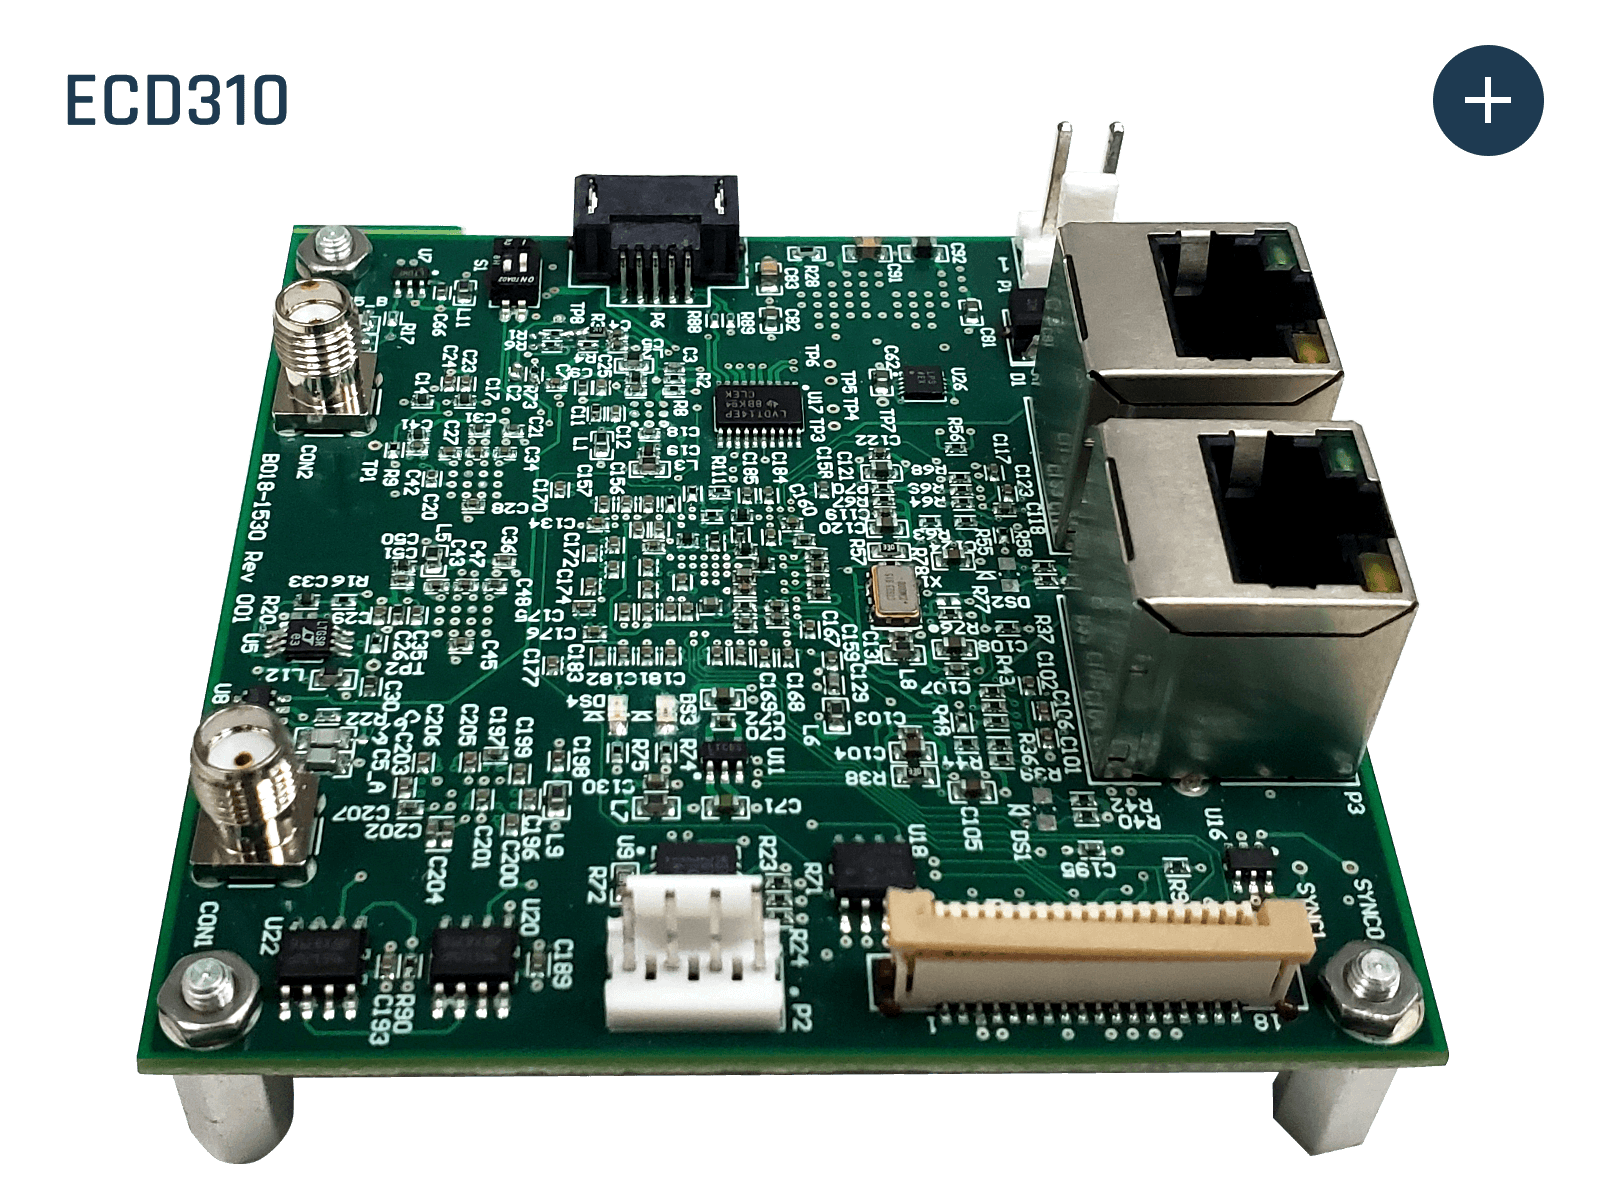 Click here to learn more about the ECD310